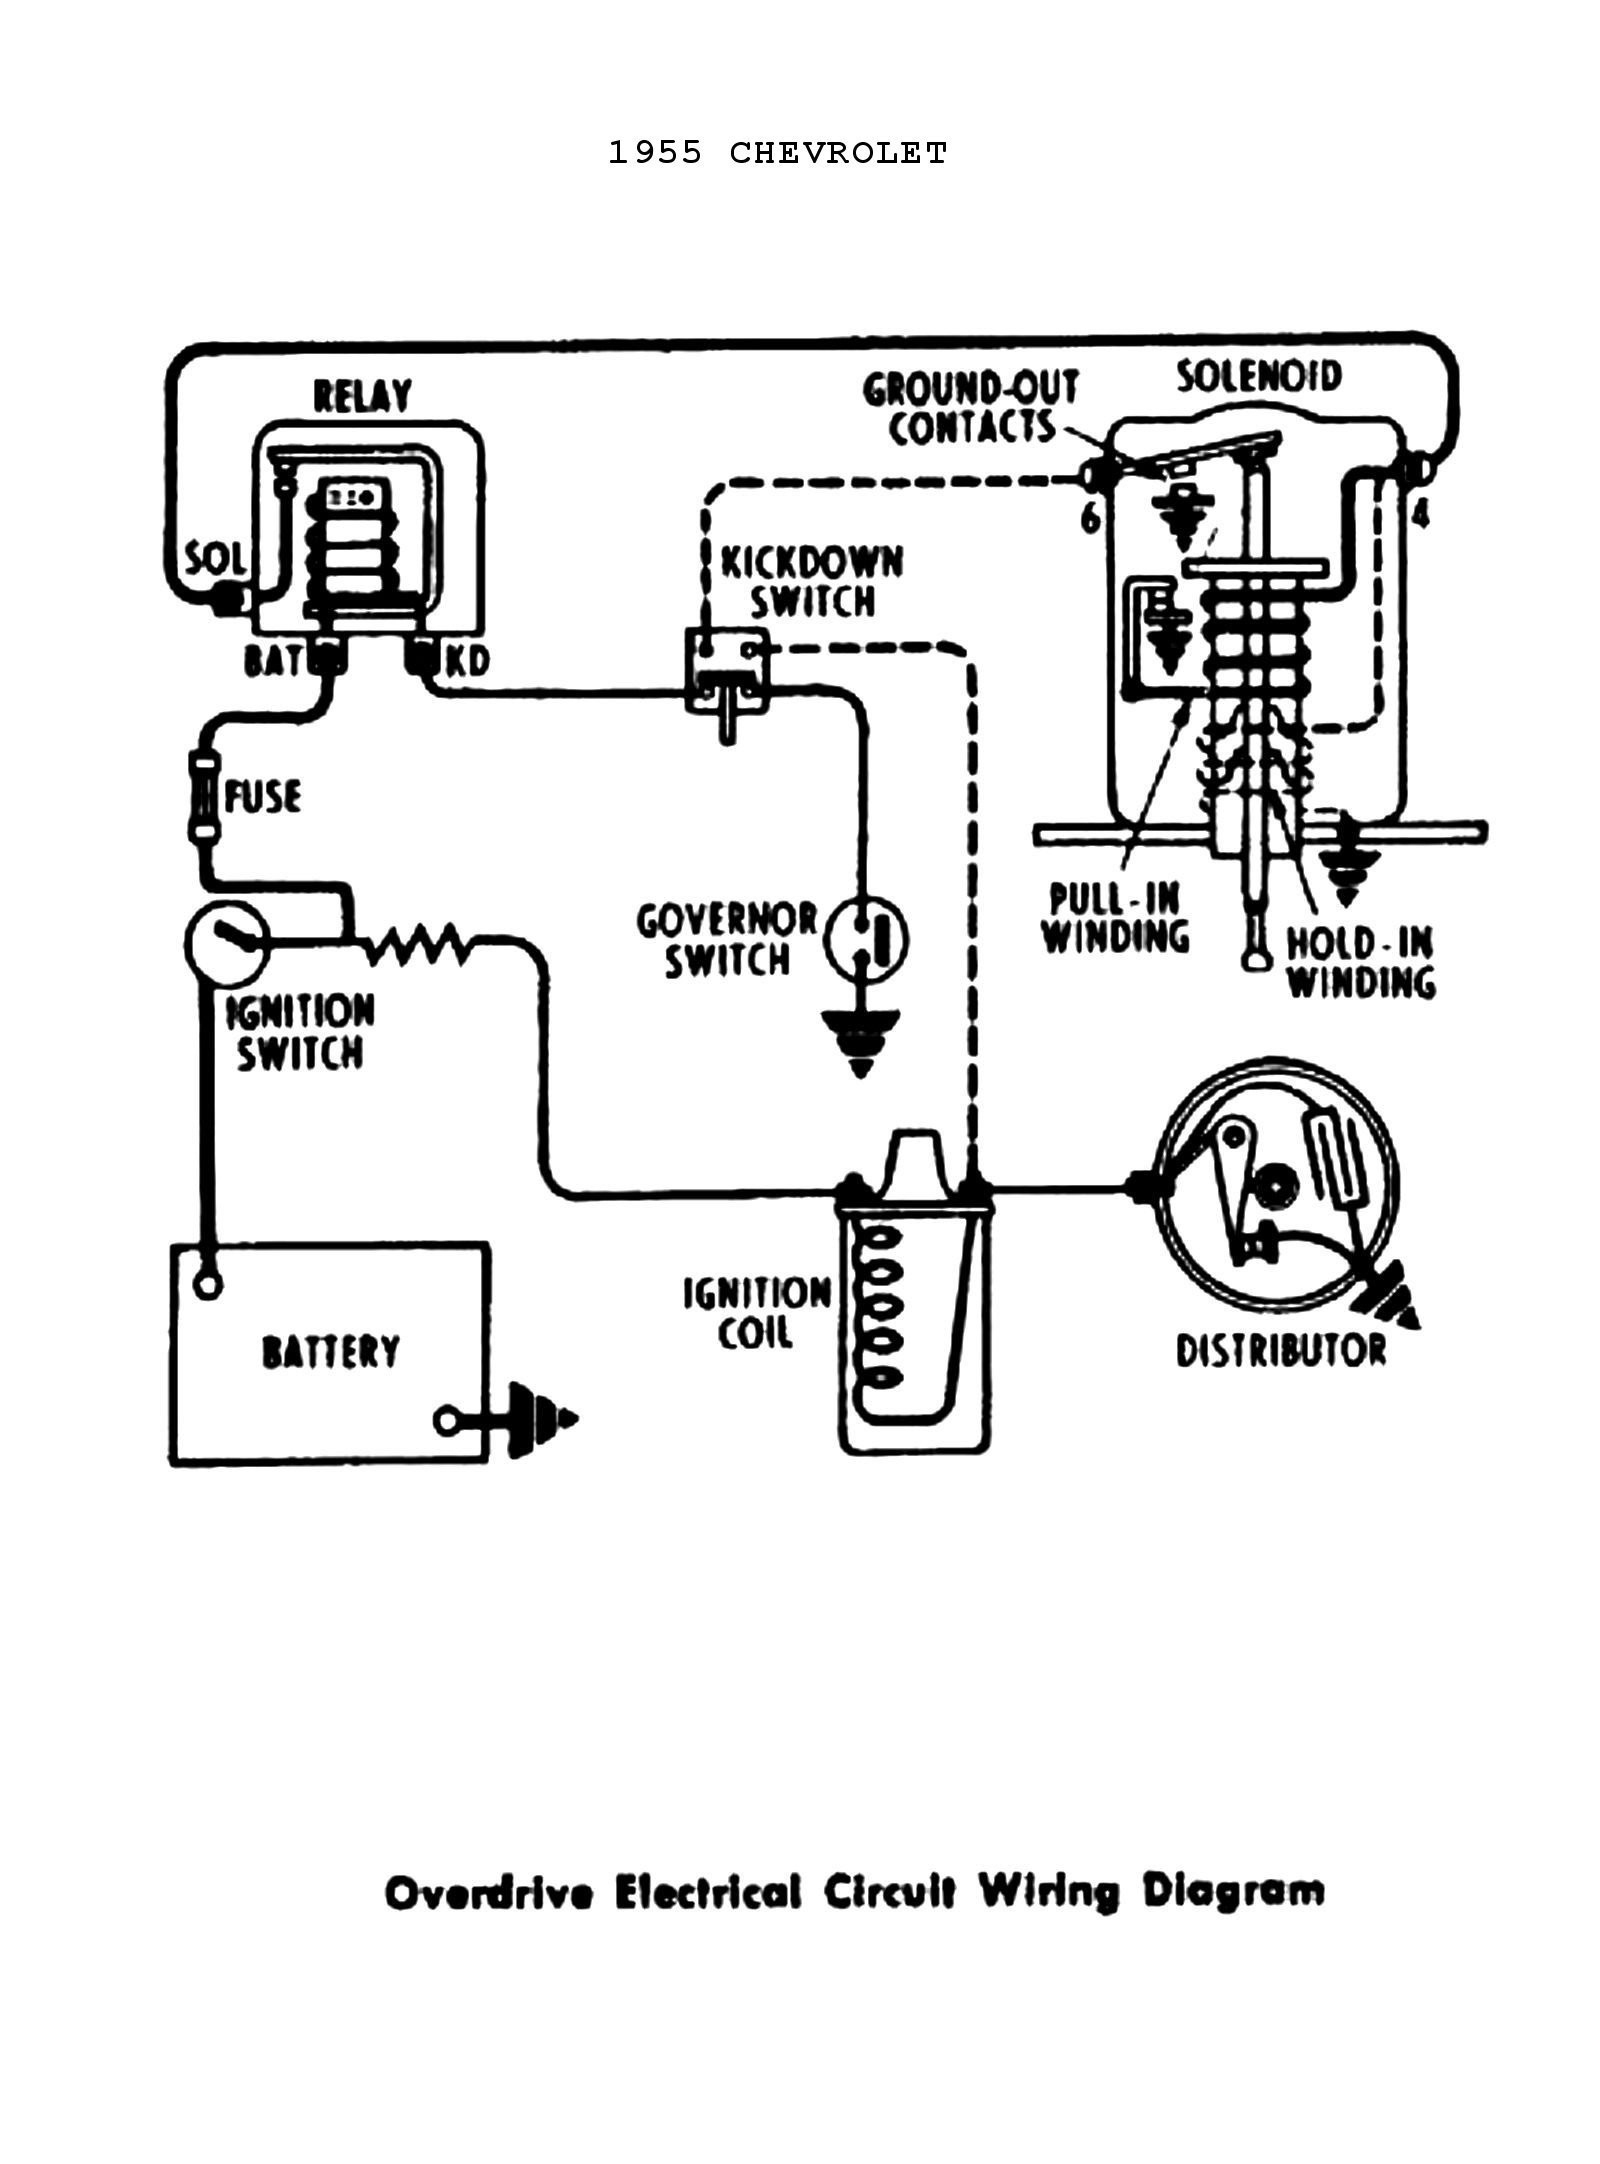 Hei Distributor Wiring Diagram Chevy 350 Rate Points Ignition System - Hei Distributor Wiring Diagram Chevy 350